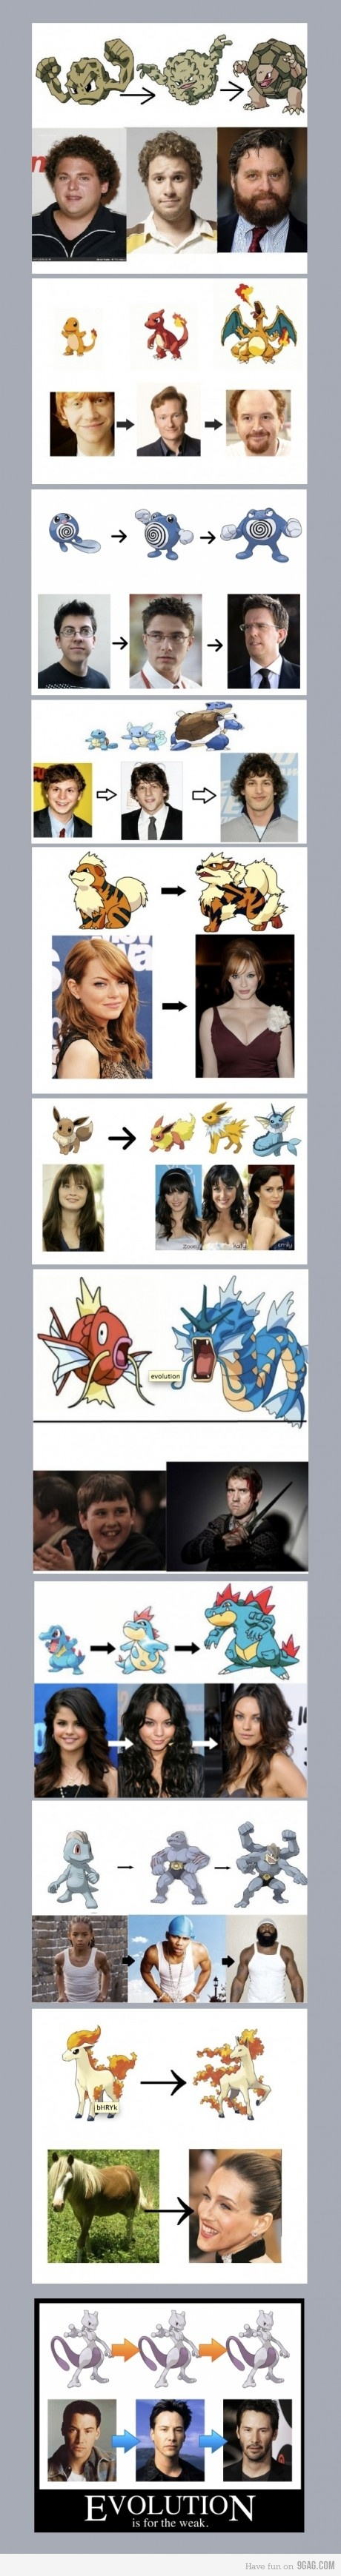 If Celebrities Were Pokemon | Meme Shuffle | Pokémon ...